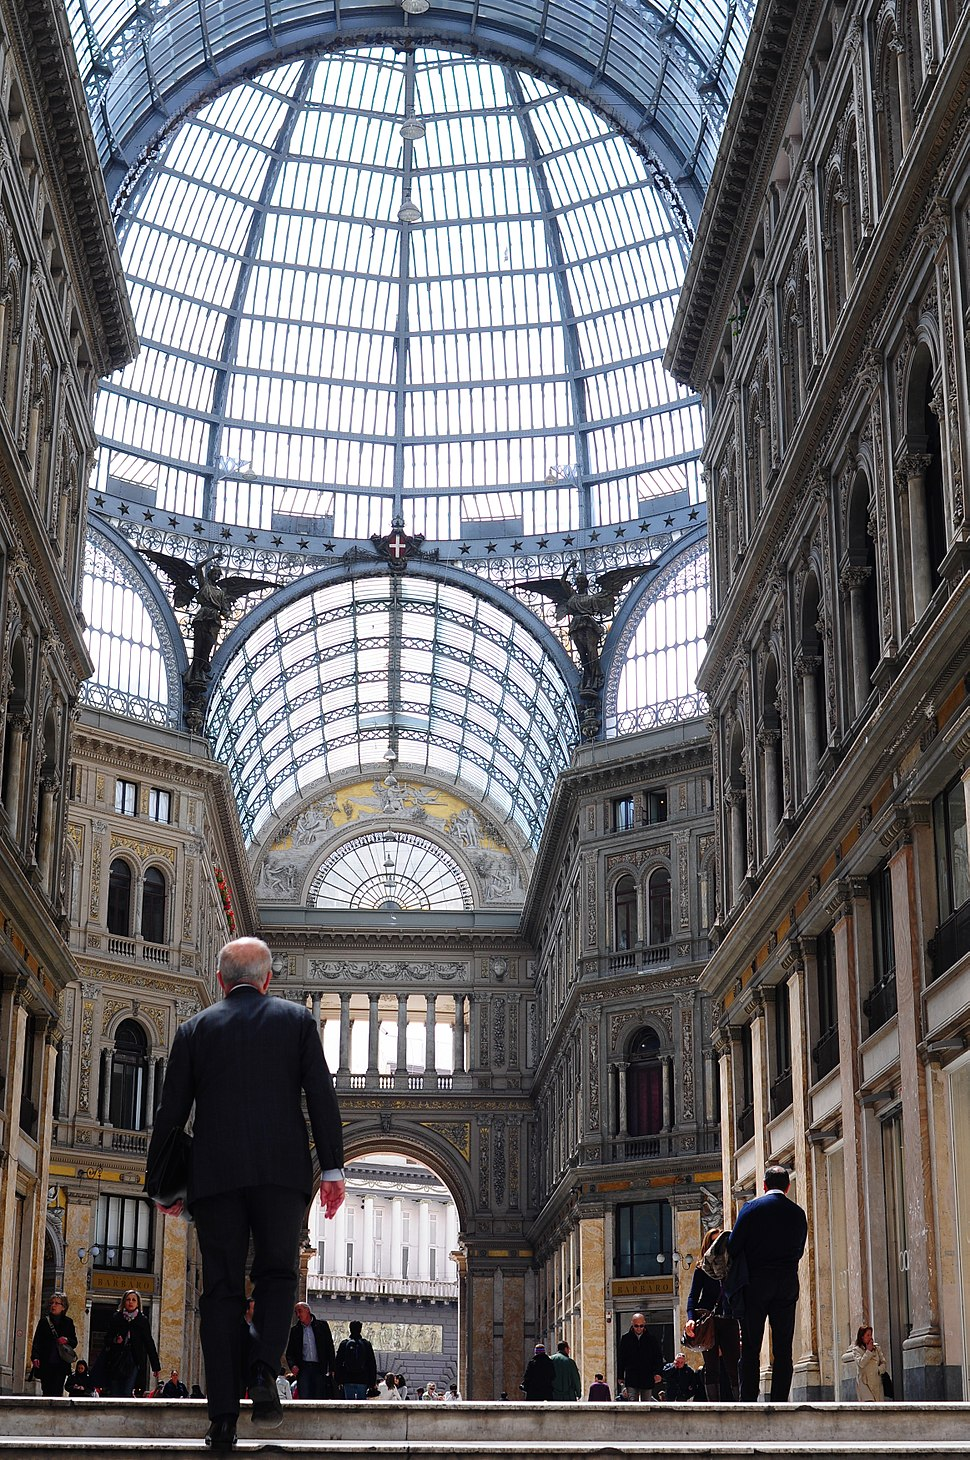 Interior of Galleria Umberto I. Naples, Campania, Italy, South Europe